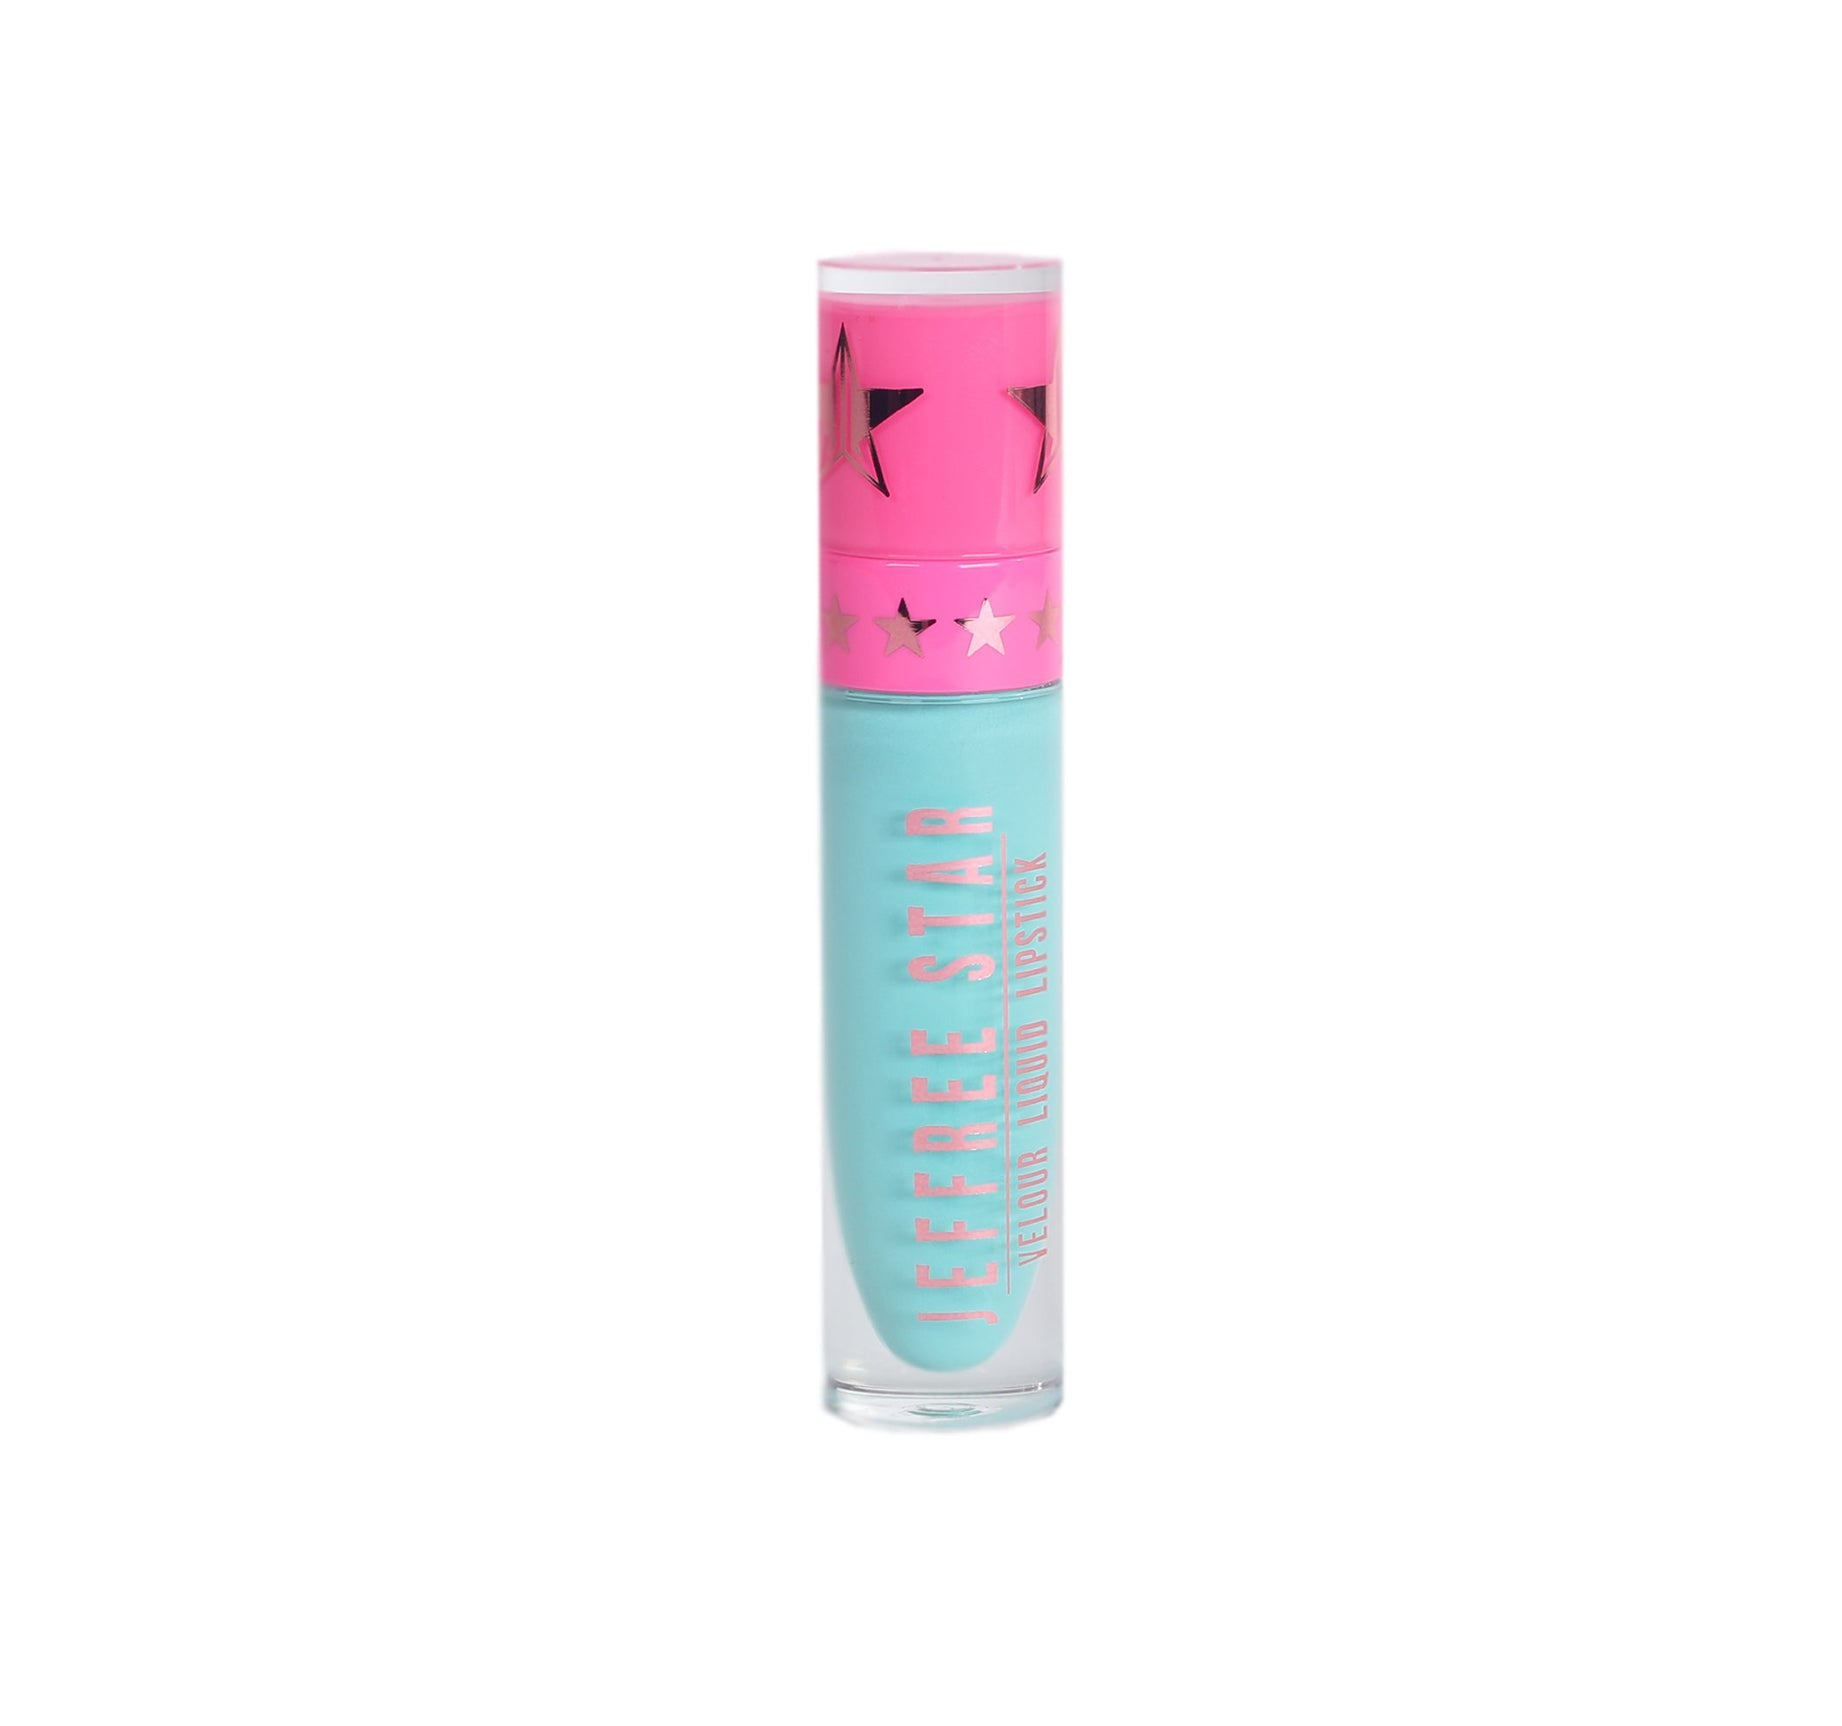 VELOUR LIQUID LIPSTICK - BREAKFAST AT TIFFANYS, view larger image